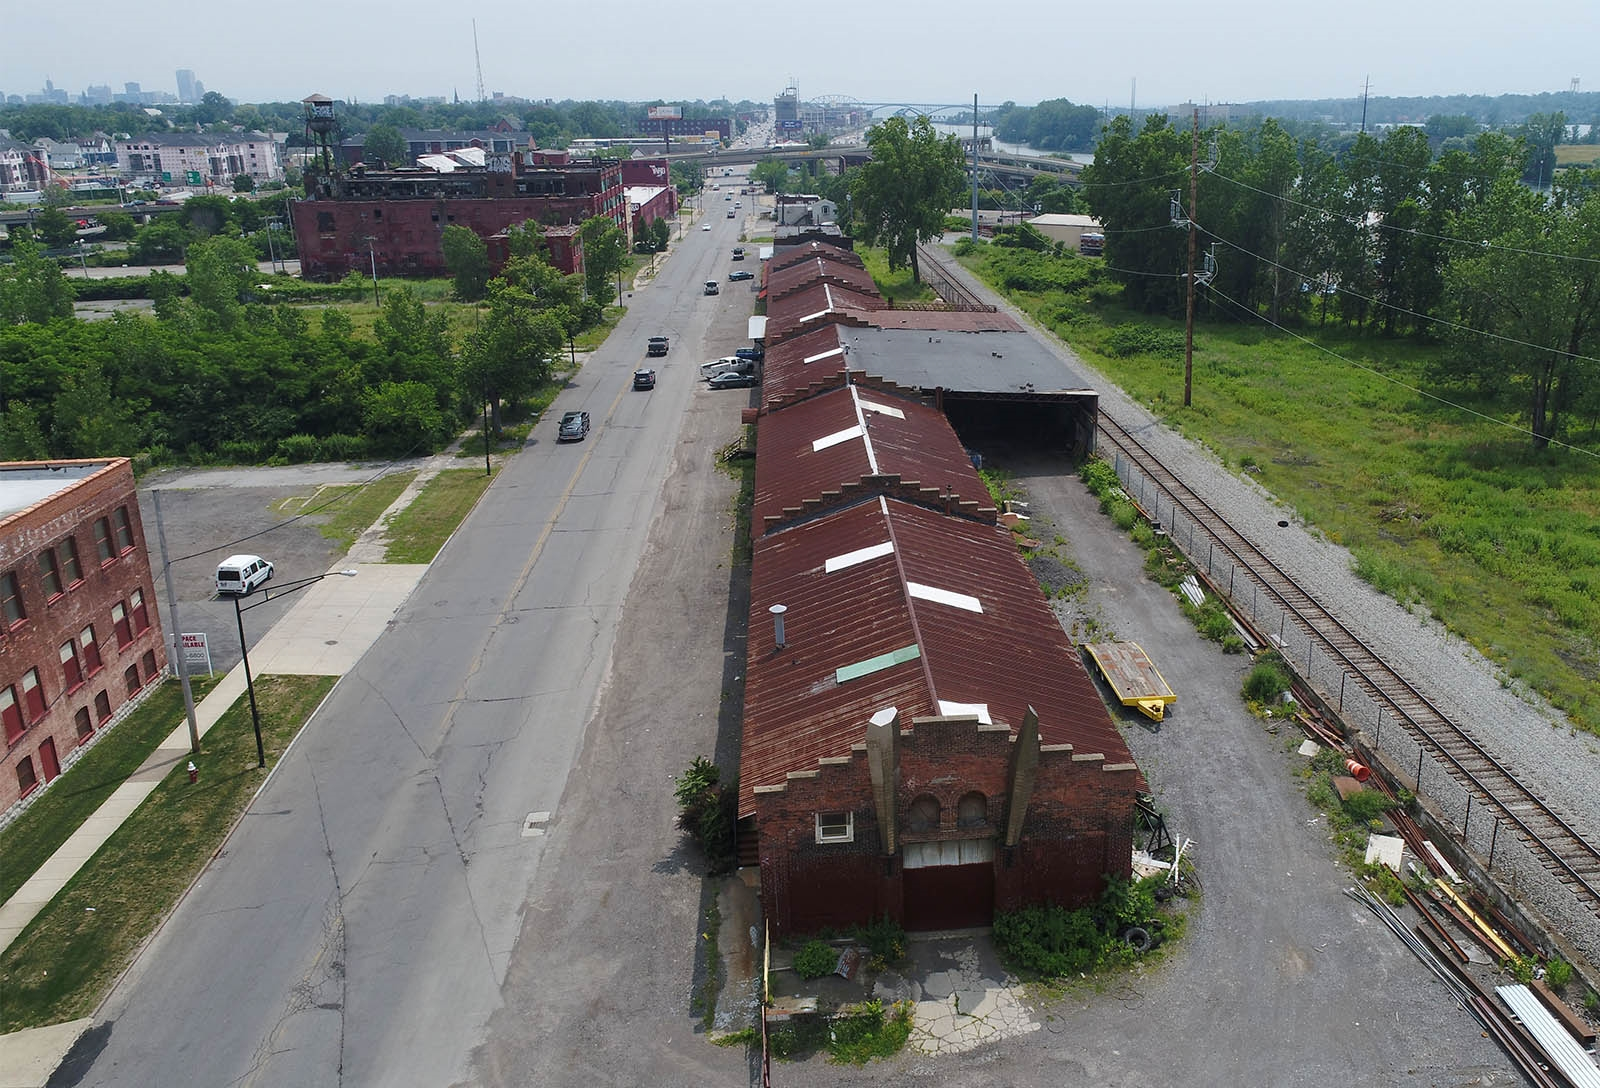 The former New York Capital Freight building on Tonawanda Street is being converted into 37 apartments and retail space.